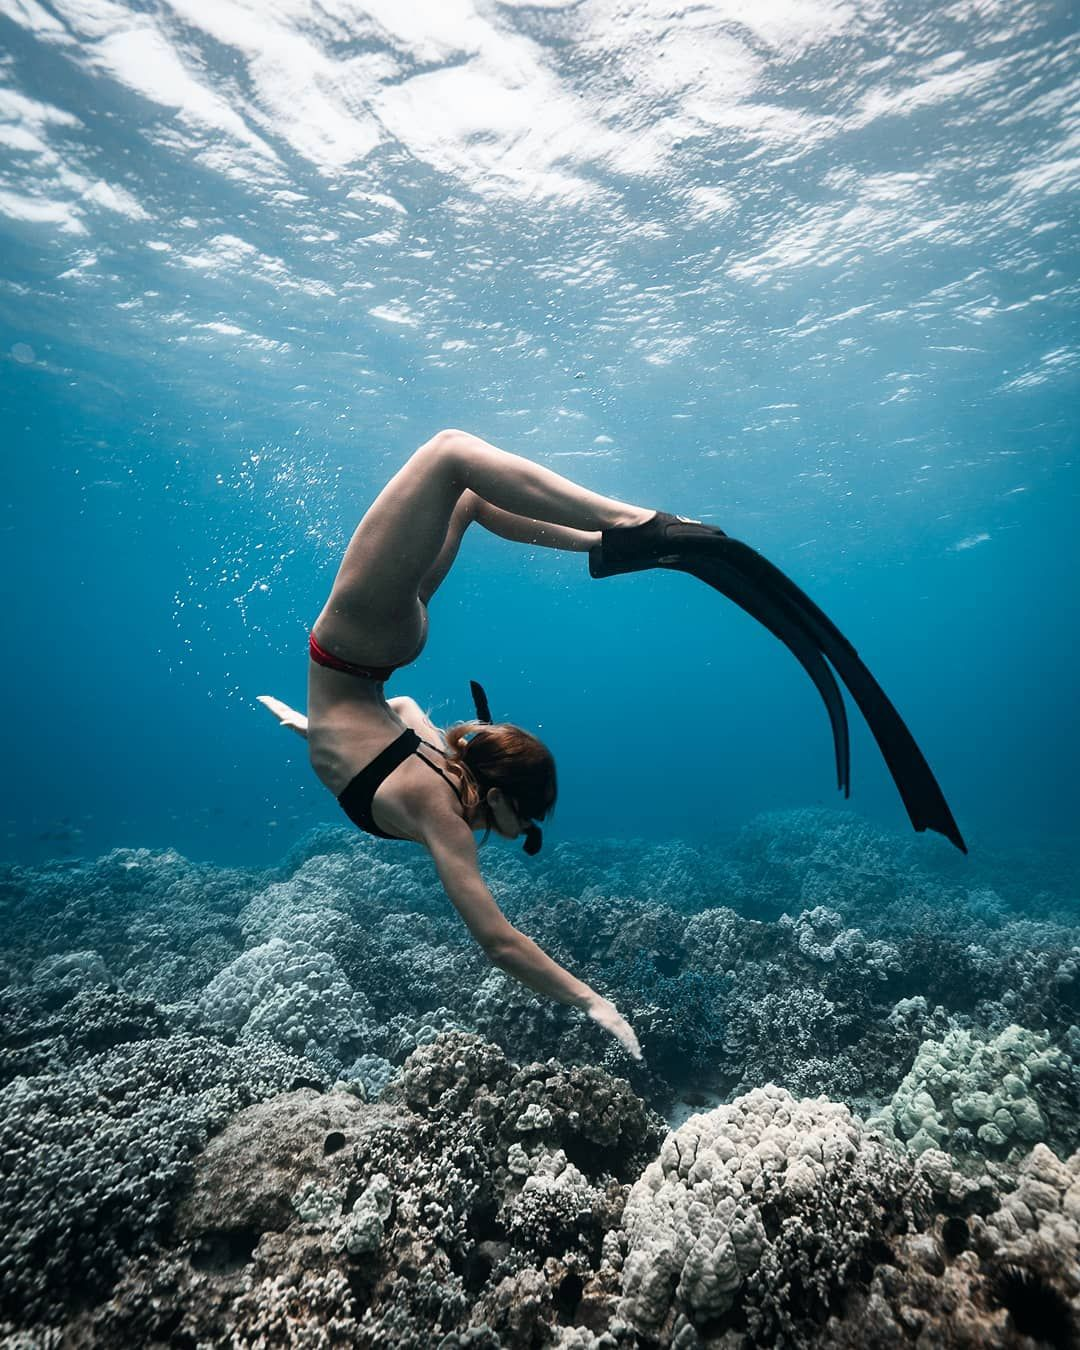 """The Big Blue"": Astonishing Underwater And Freediving"